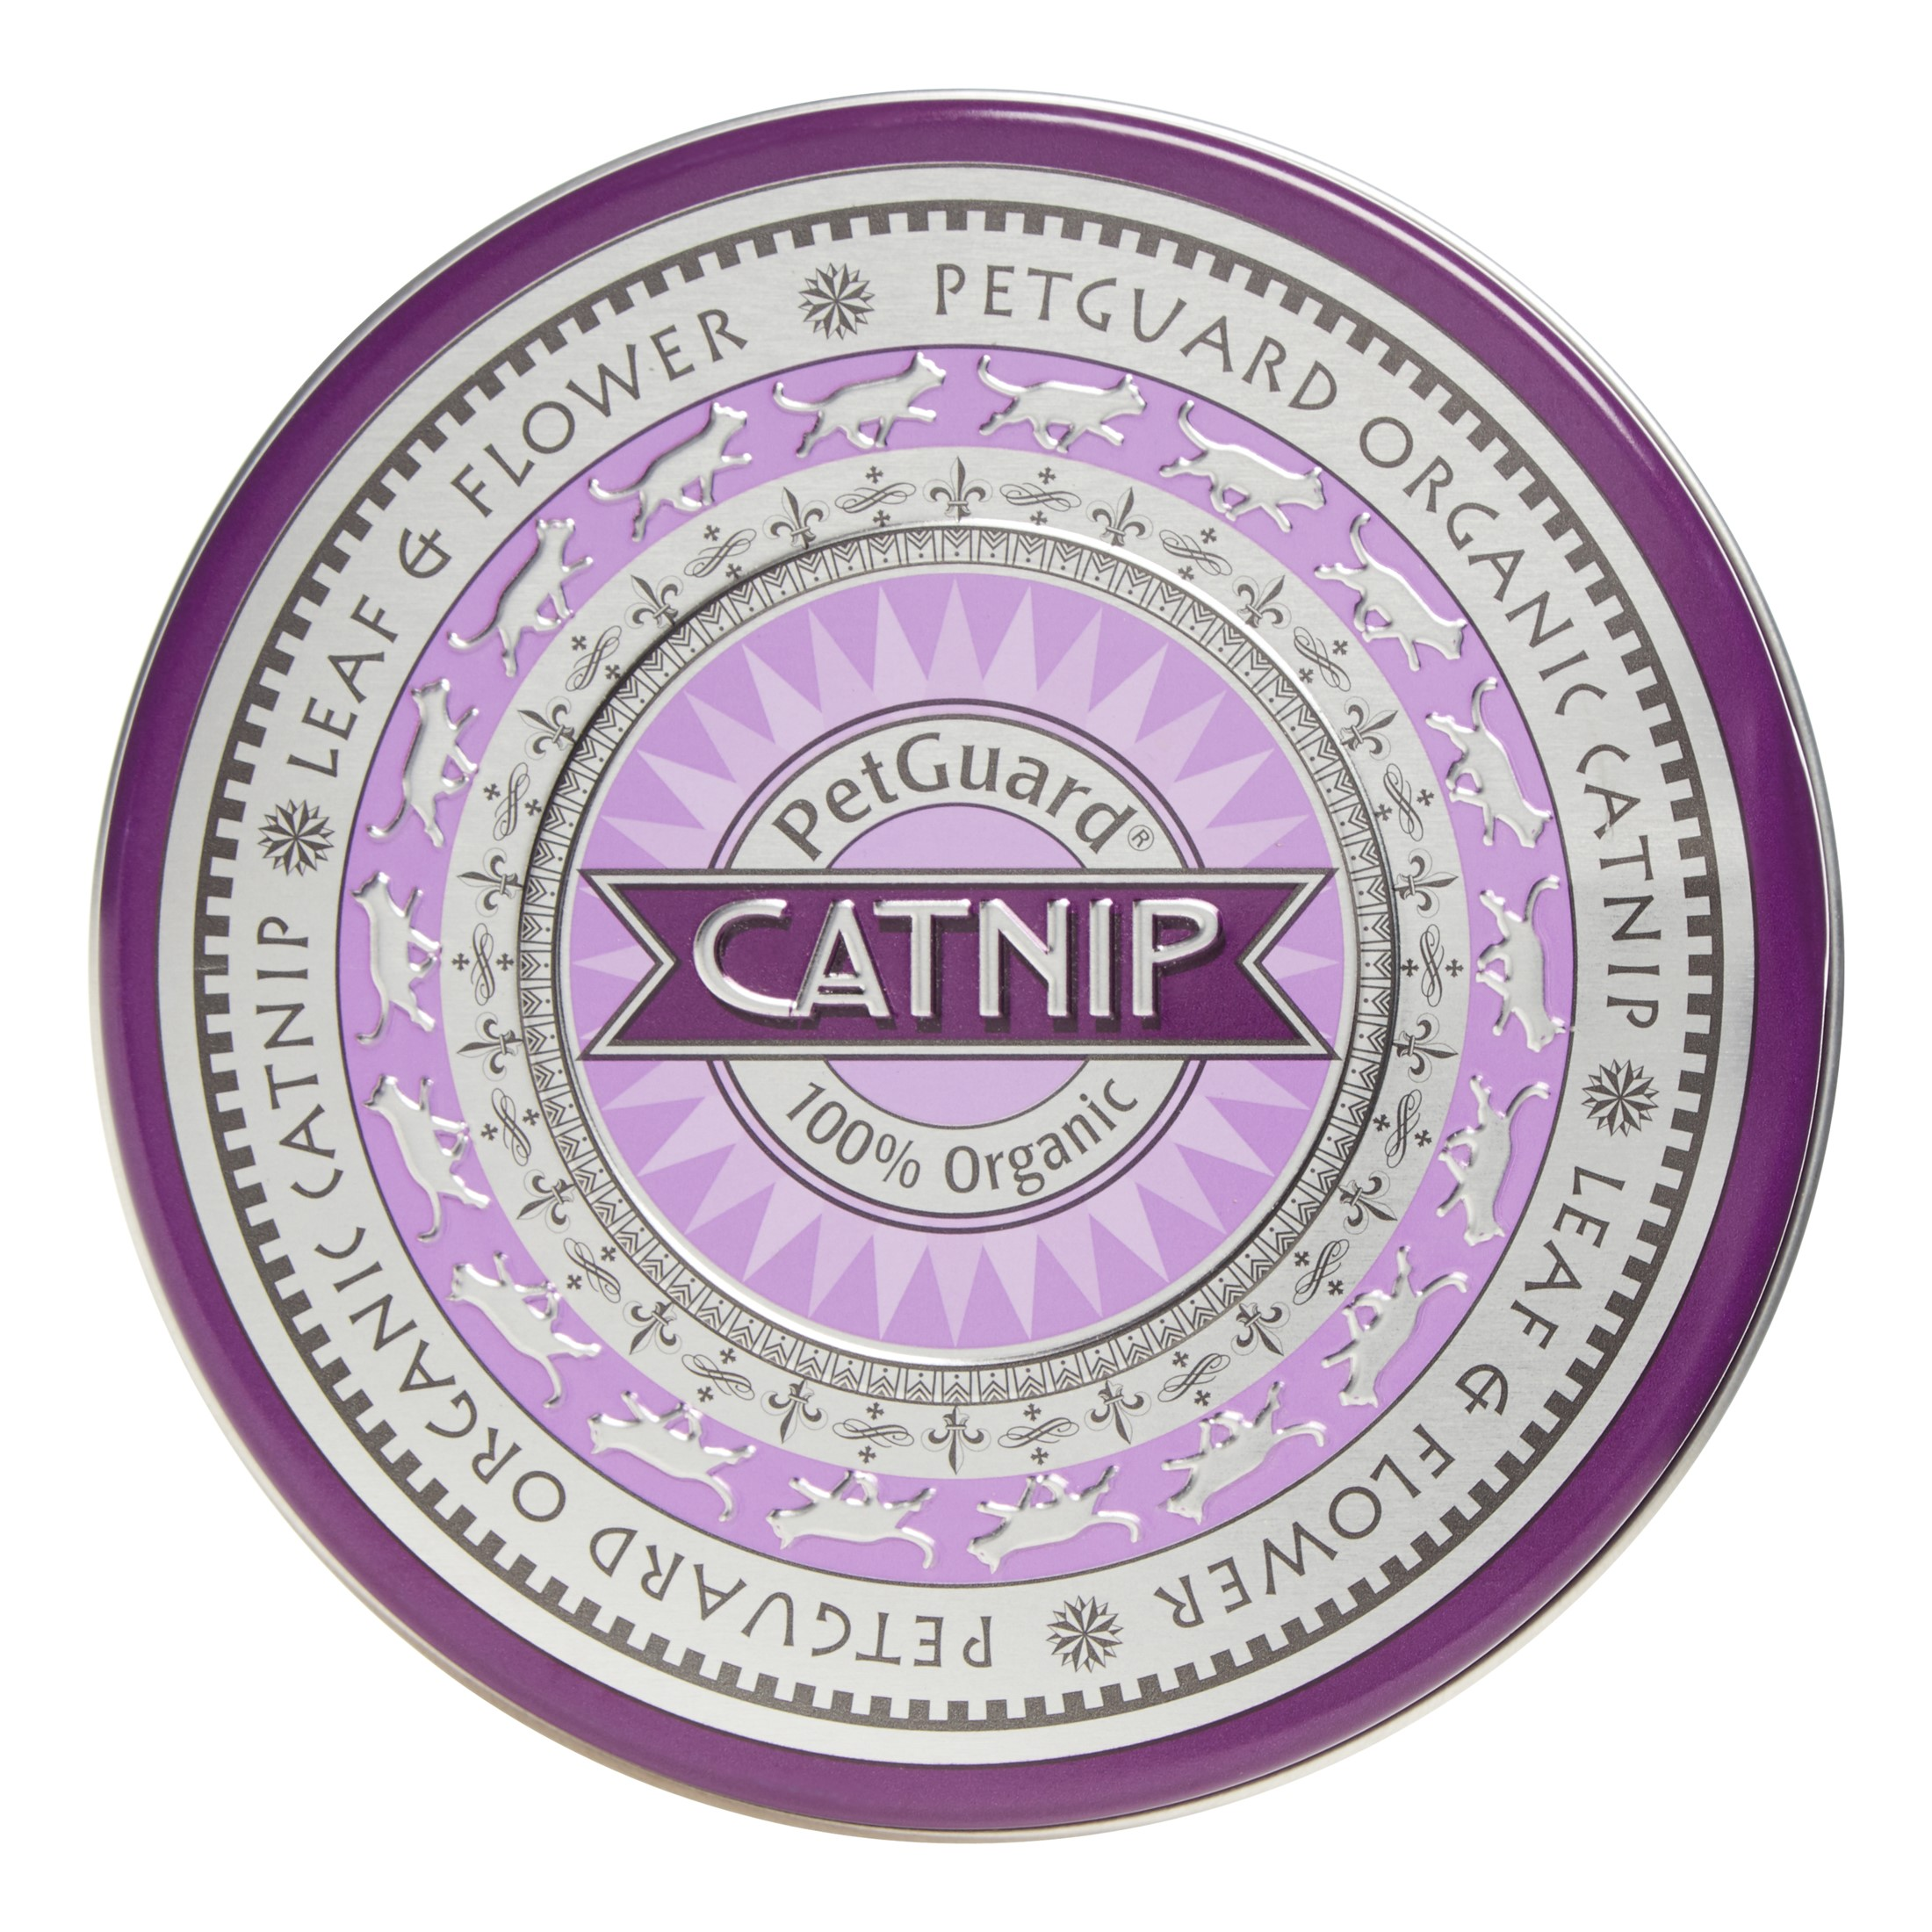 PetGuard Organic Catnip Dry Cat Treat, 1.5 oz by Pet Guard